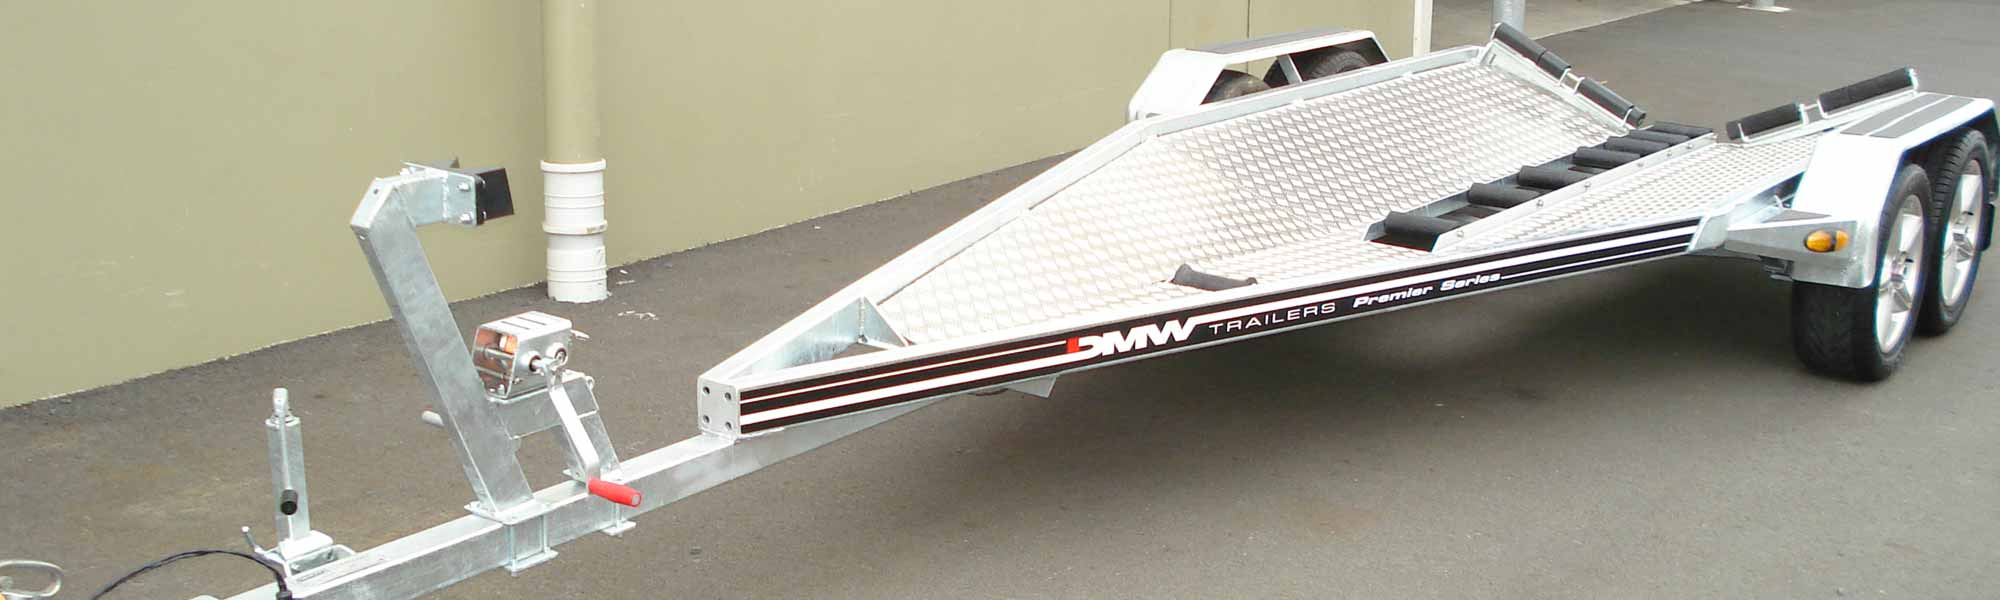 DMW Trailers perform boats